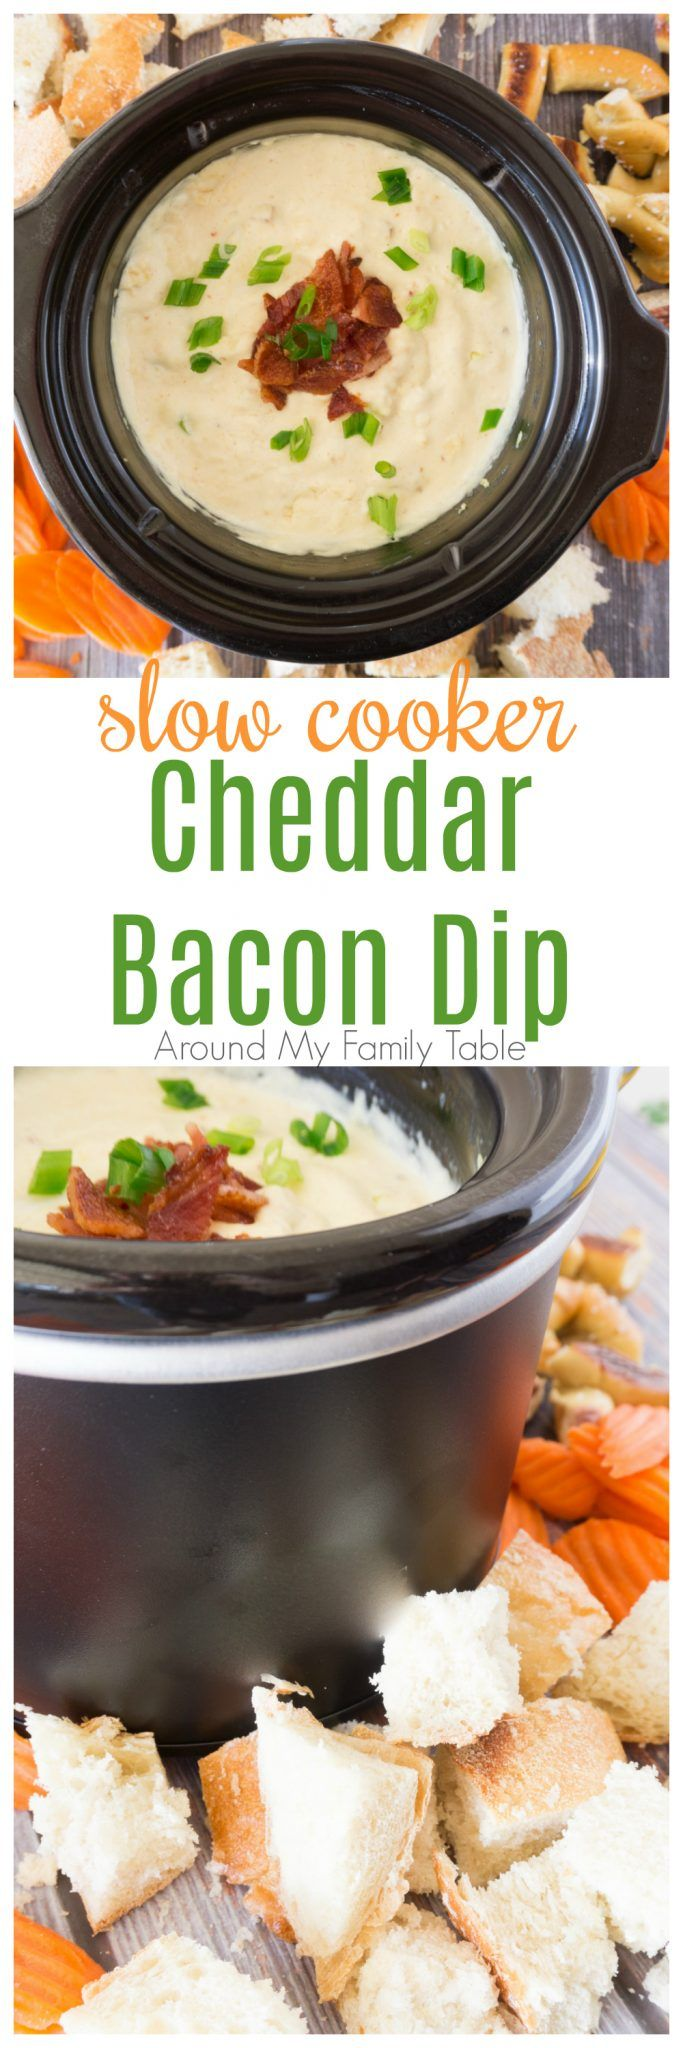 My Slow Cooker Cheddar Bacon Dip is the perfect after school snack or appetizer for the big game. Heck, I make it on the weekends to go with lunch sometimes...it's that good!